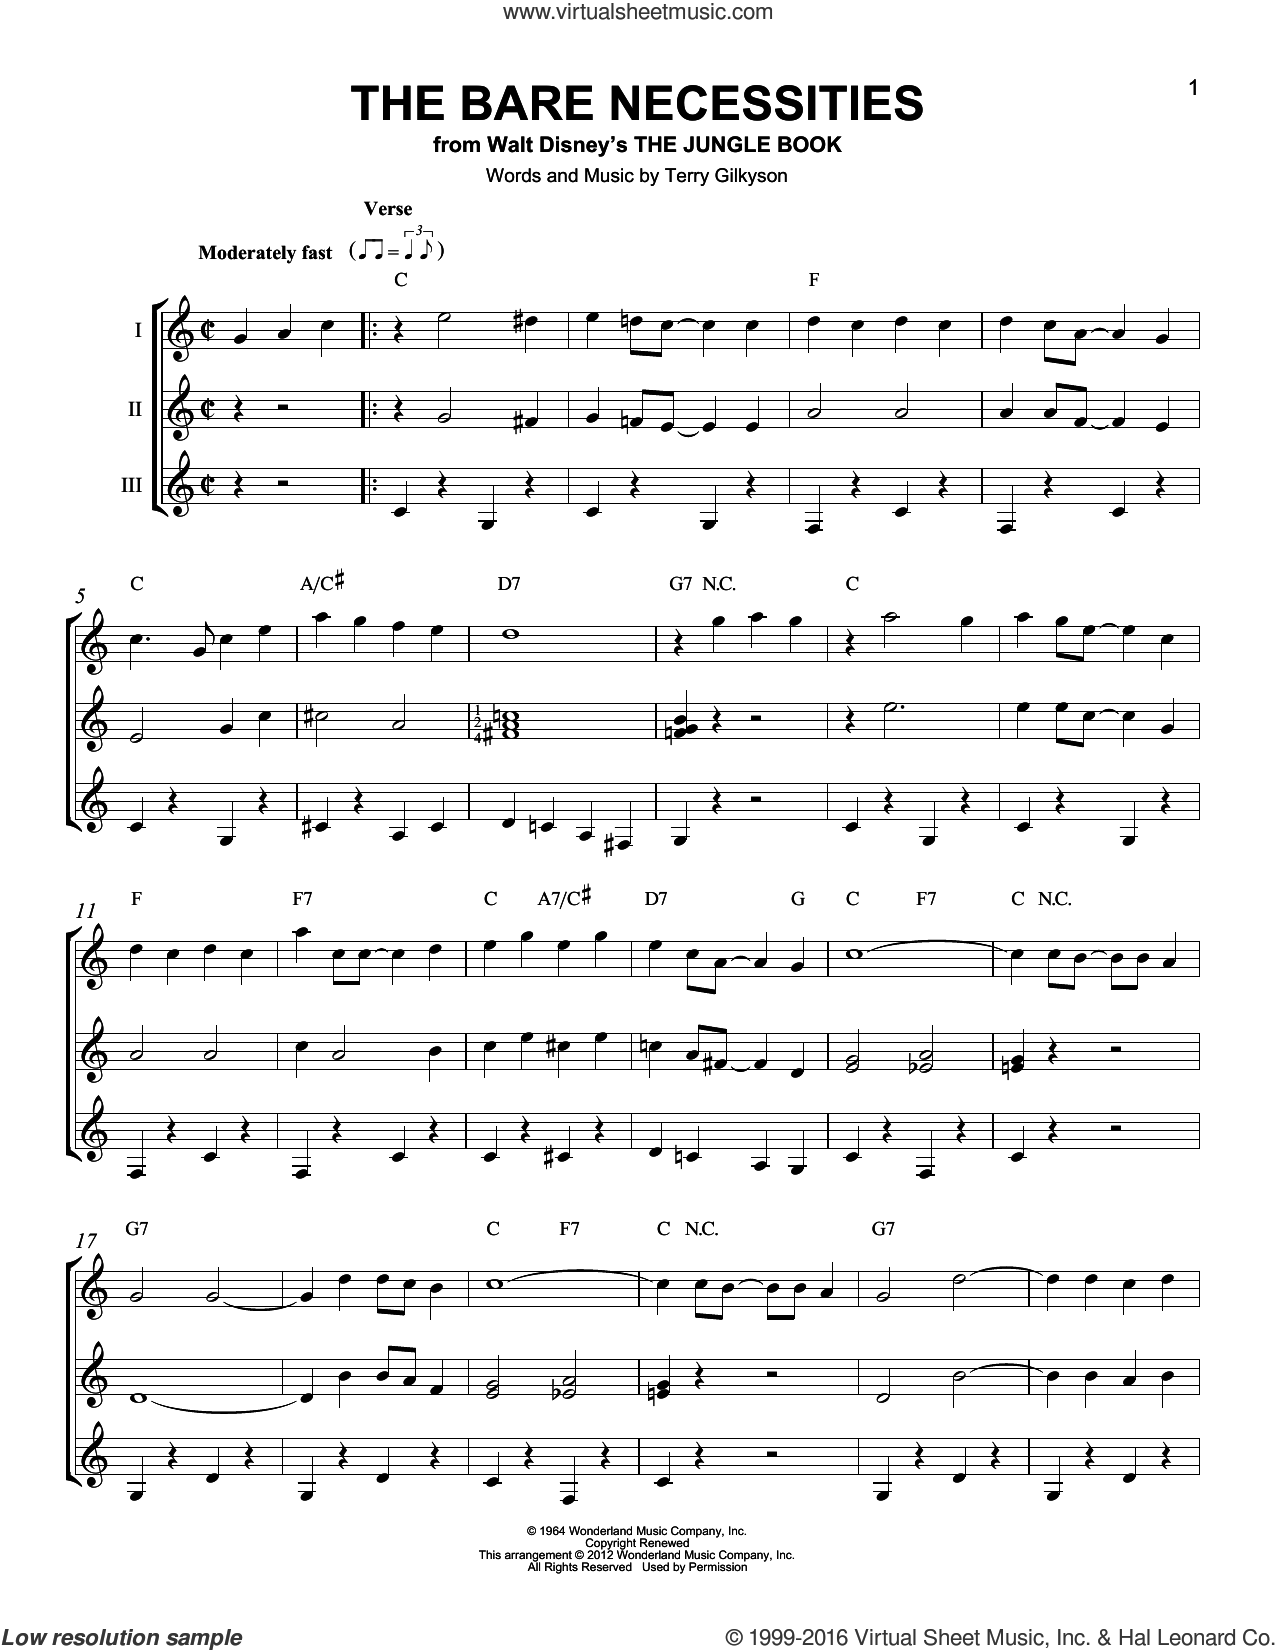 The Bare Necessities sheet music for guitar ensemble by Terry Gilkyson, intermediate skill level